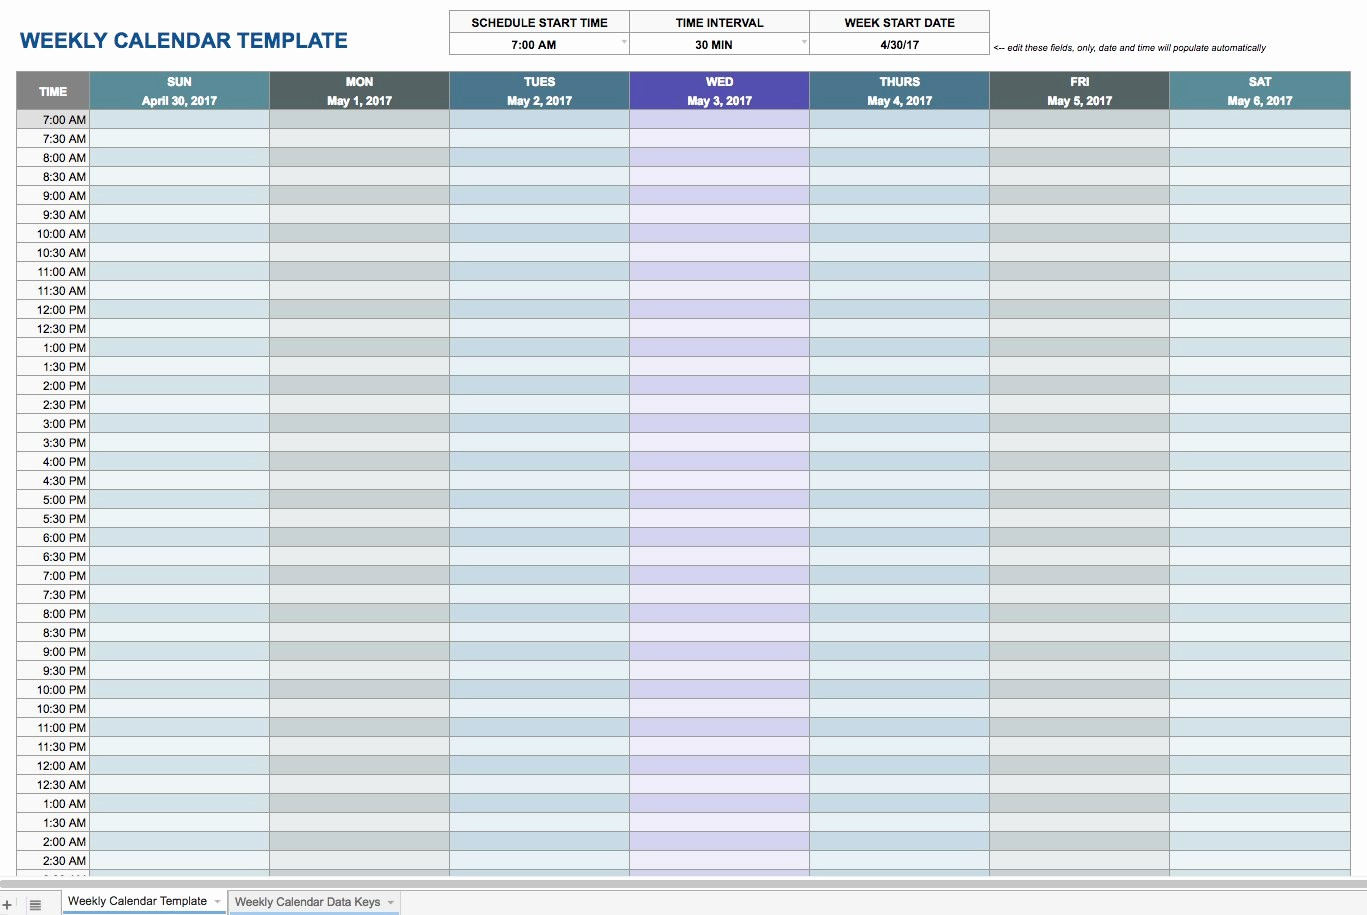 Monthly Timesheet Template Google Docs Luxury Free Google Docs and Spreadsheet Templates Smartsheet